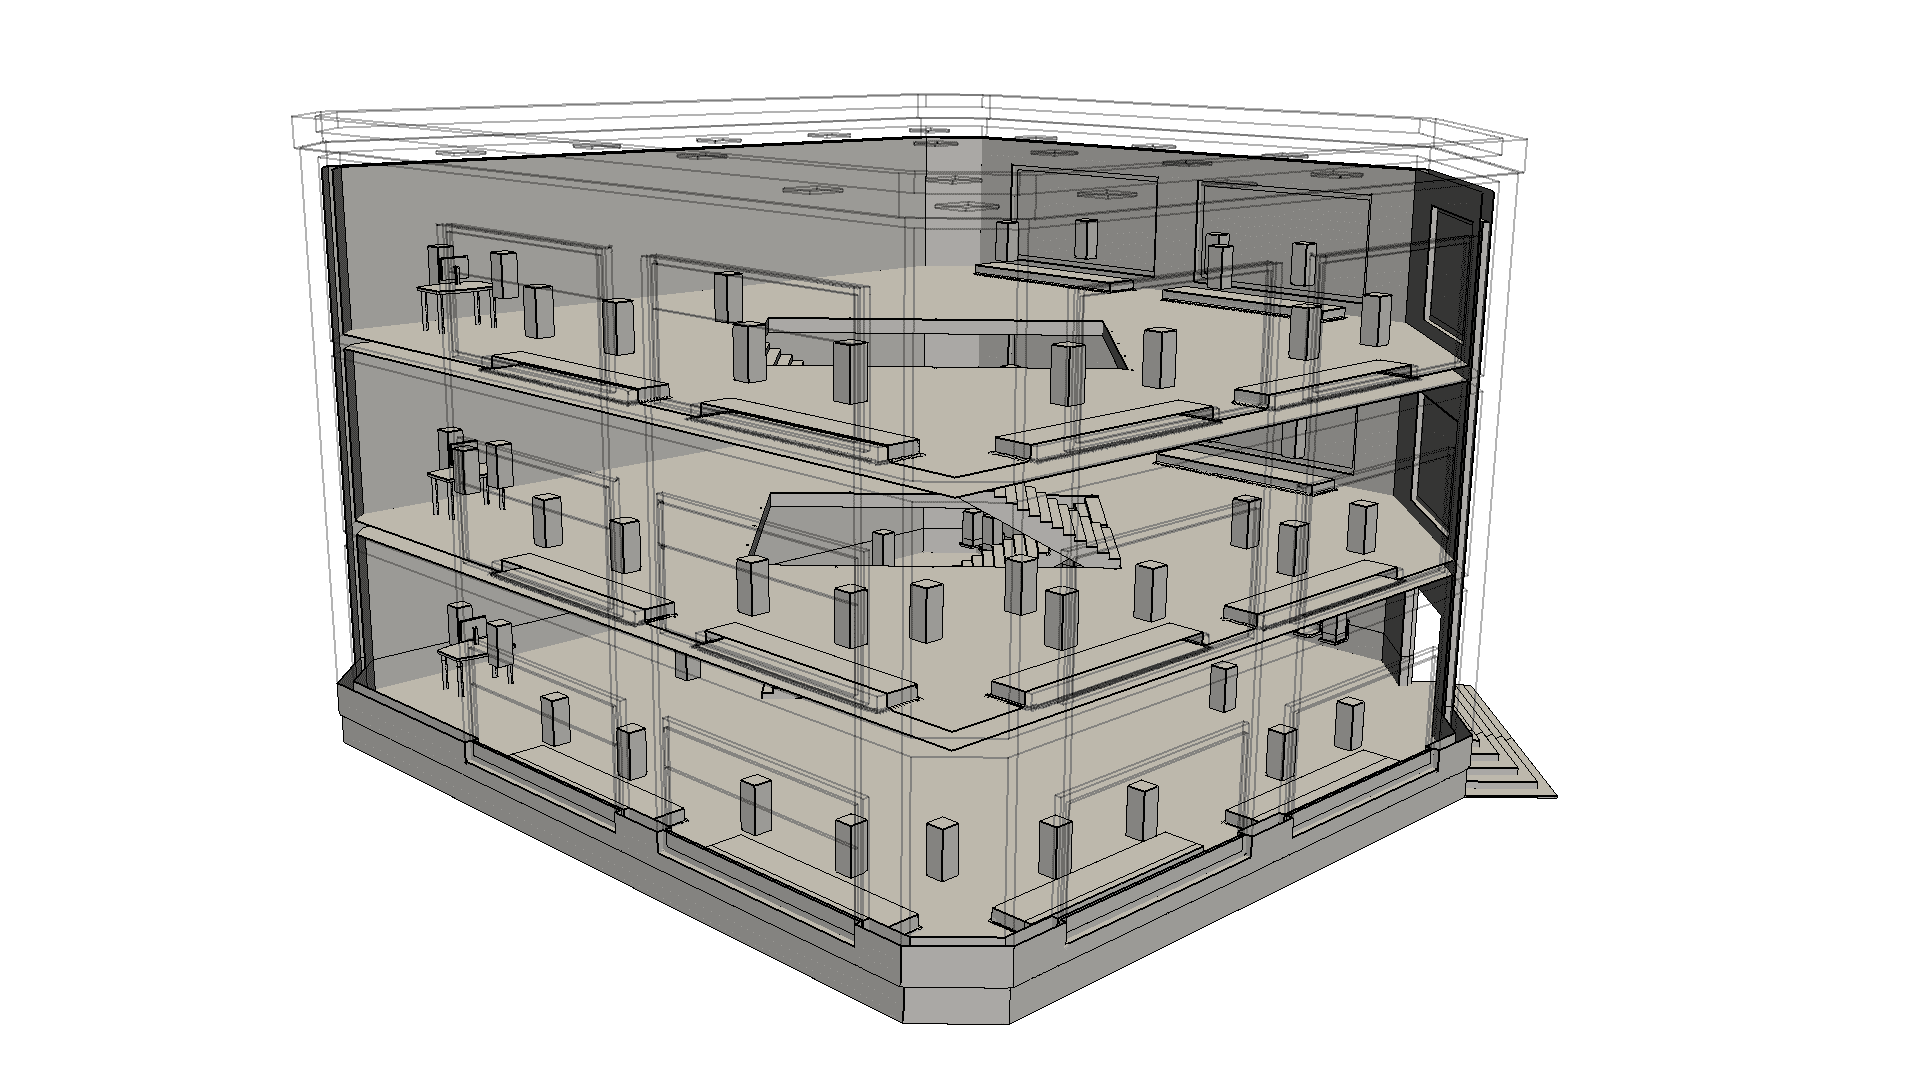 Shopping mall CAD model, commercial building design